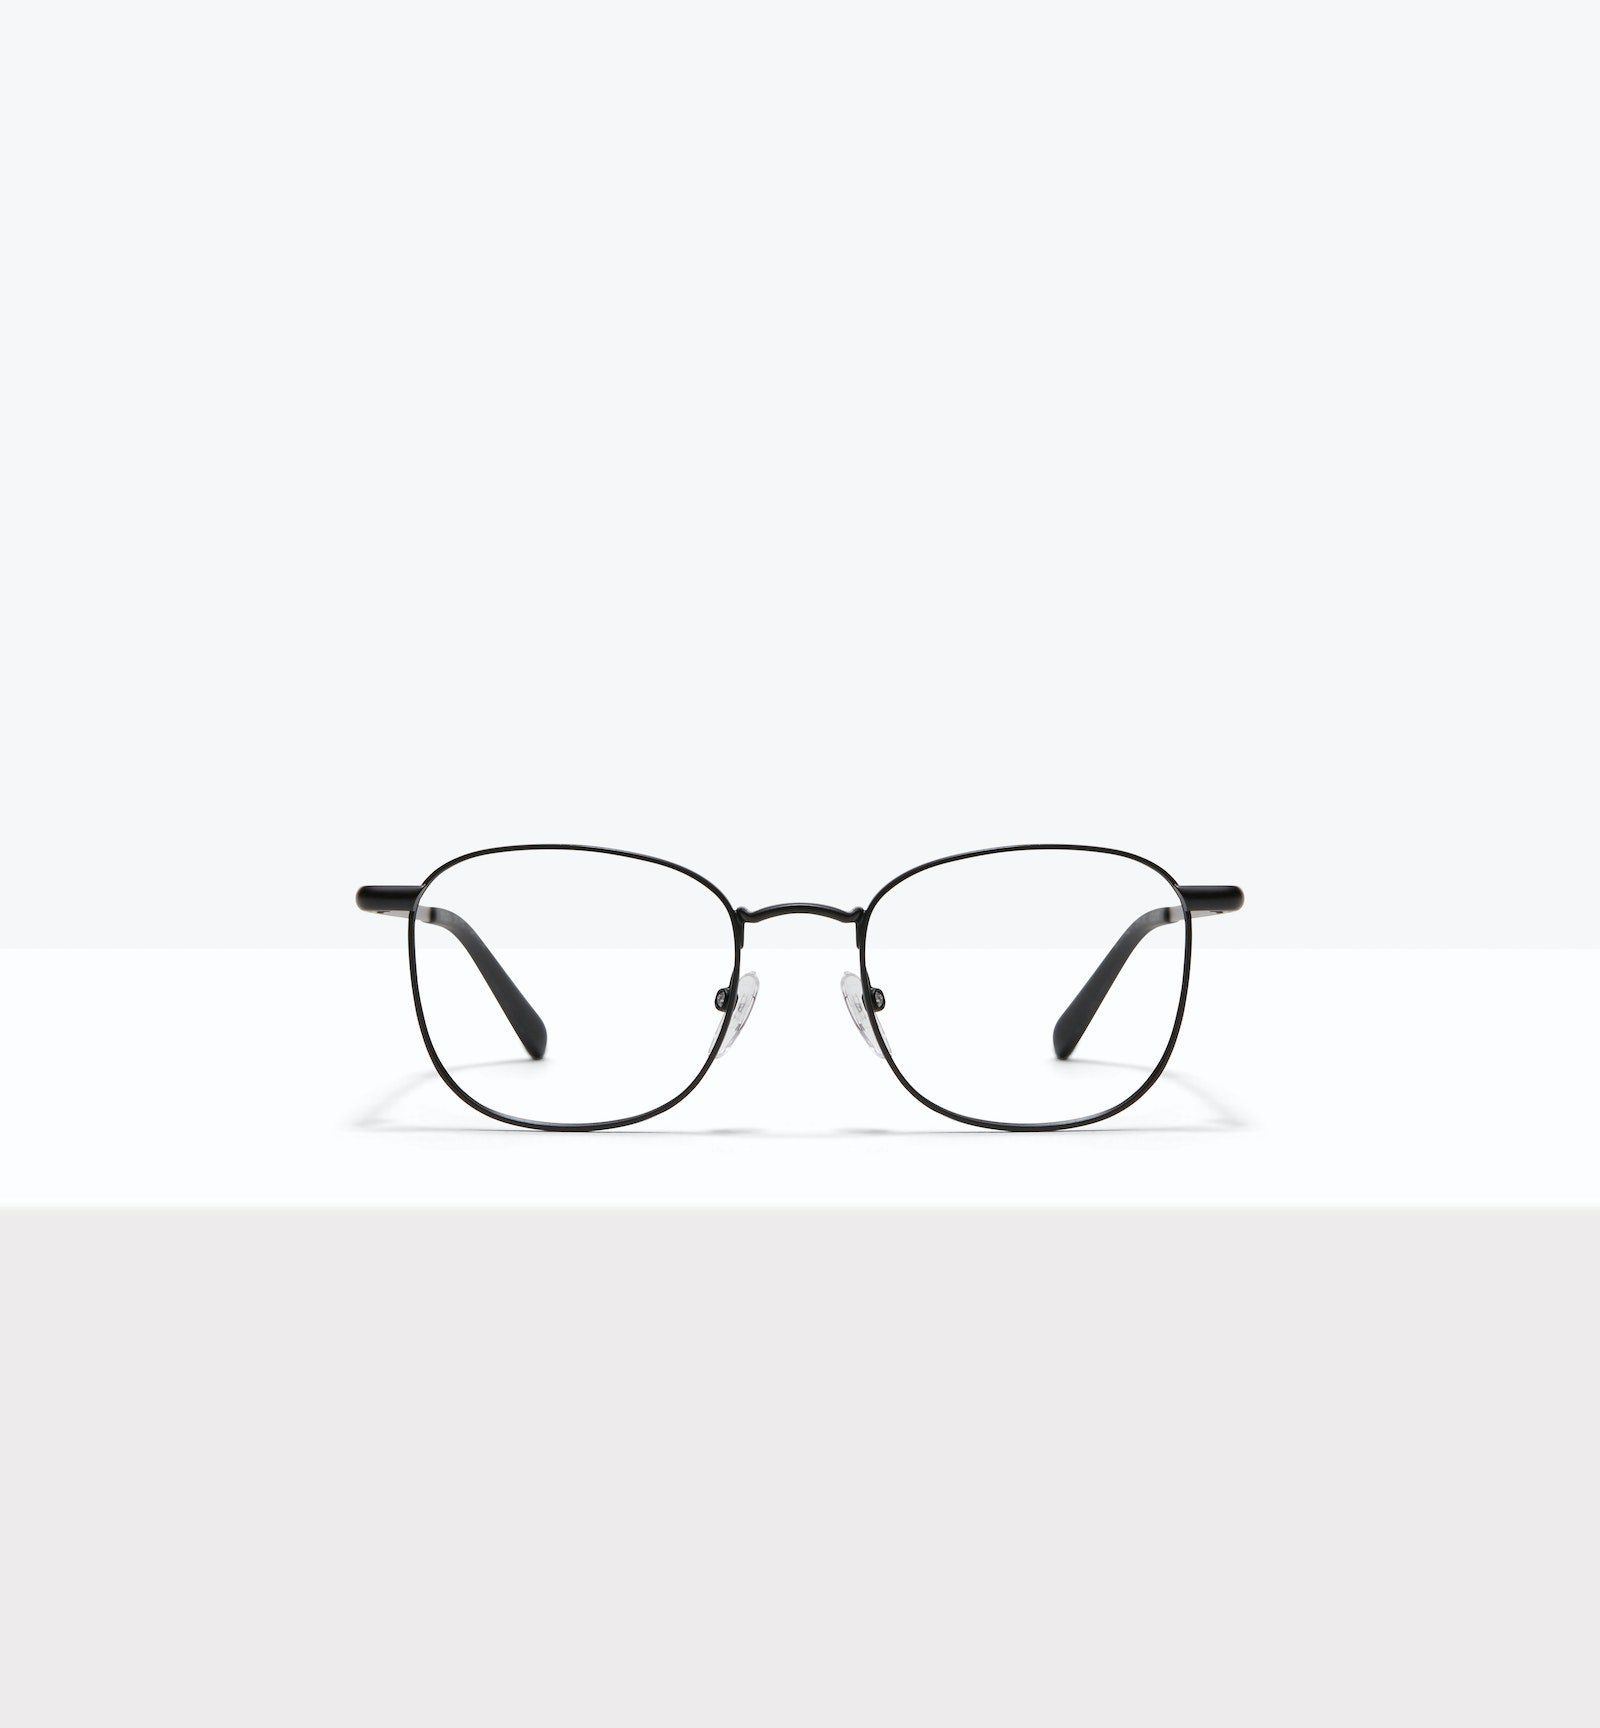 Affordable Fashion Glasses Square Eyeglasses Men Women Apex S Matte Black